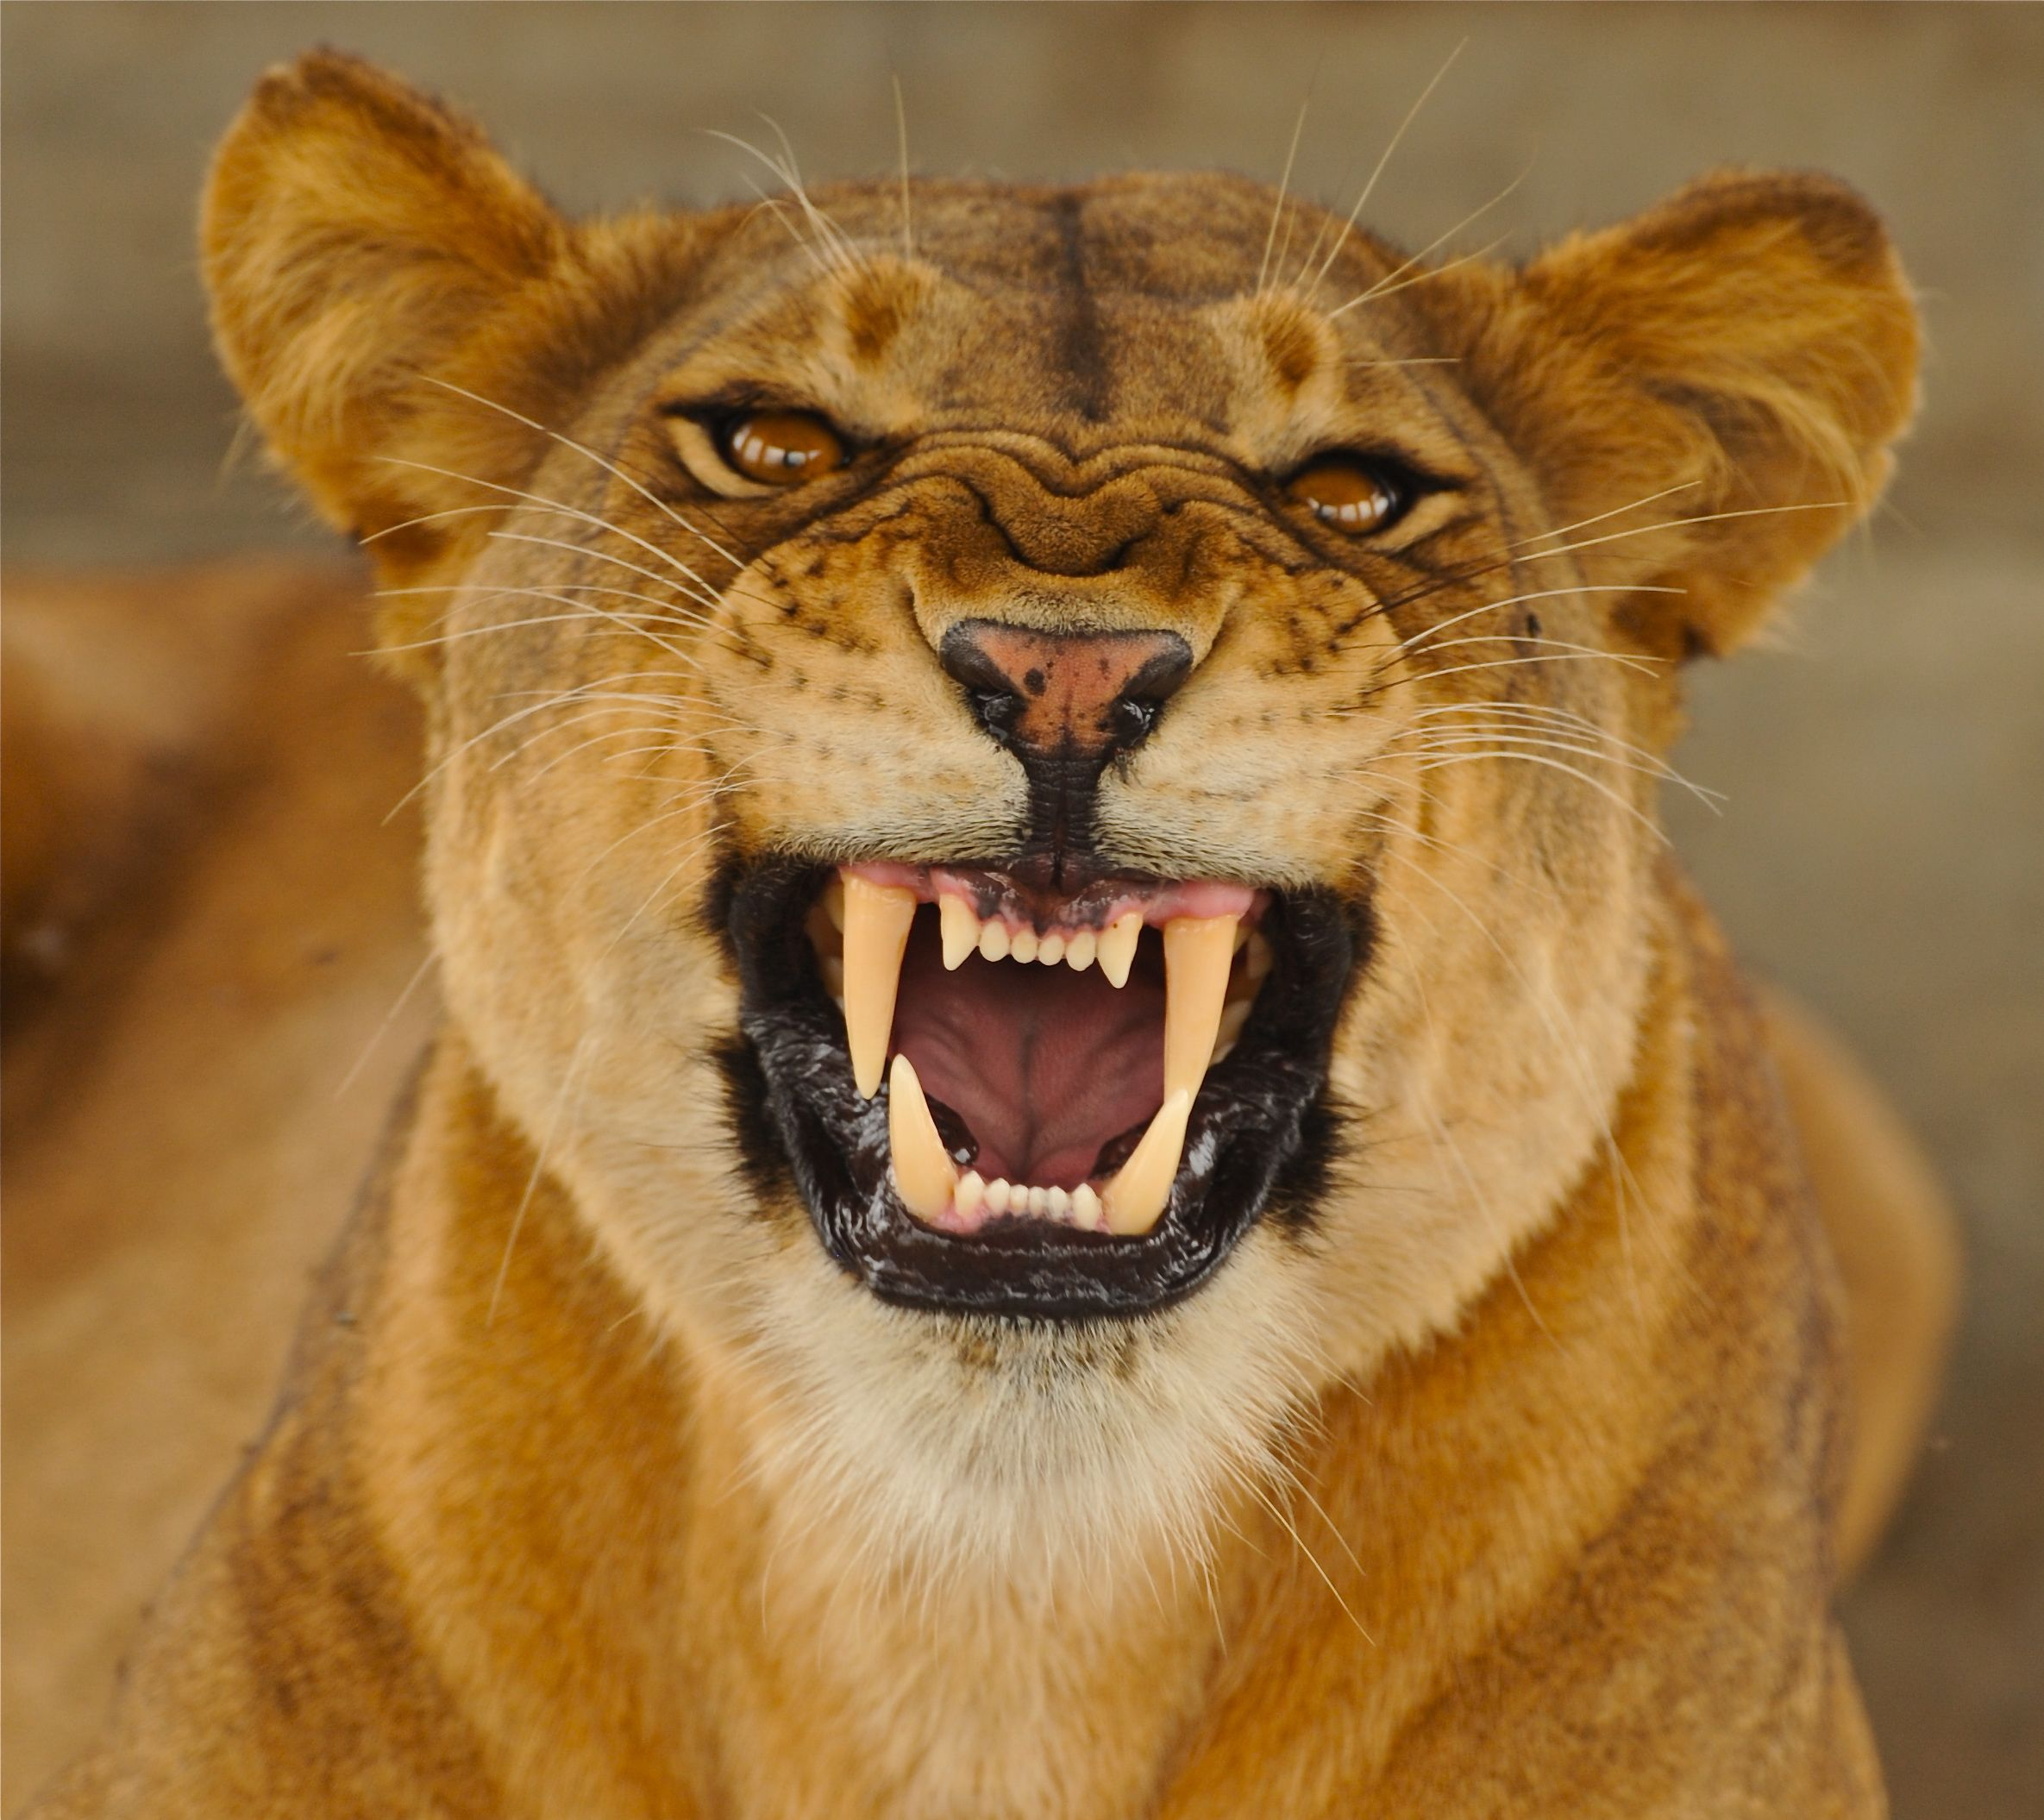 Image Gallery For : Snarling Lioness